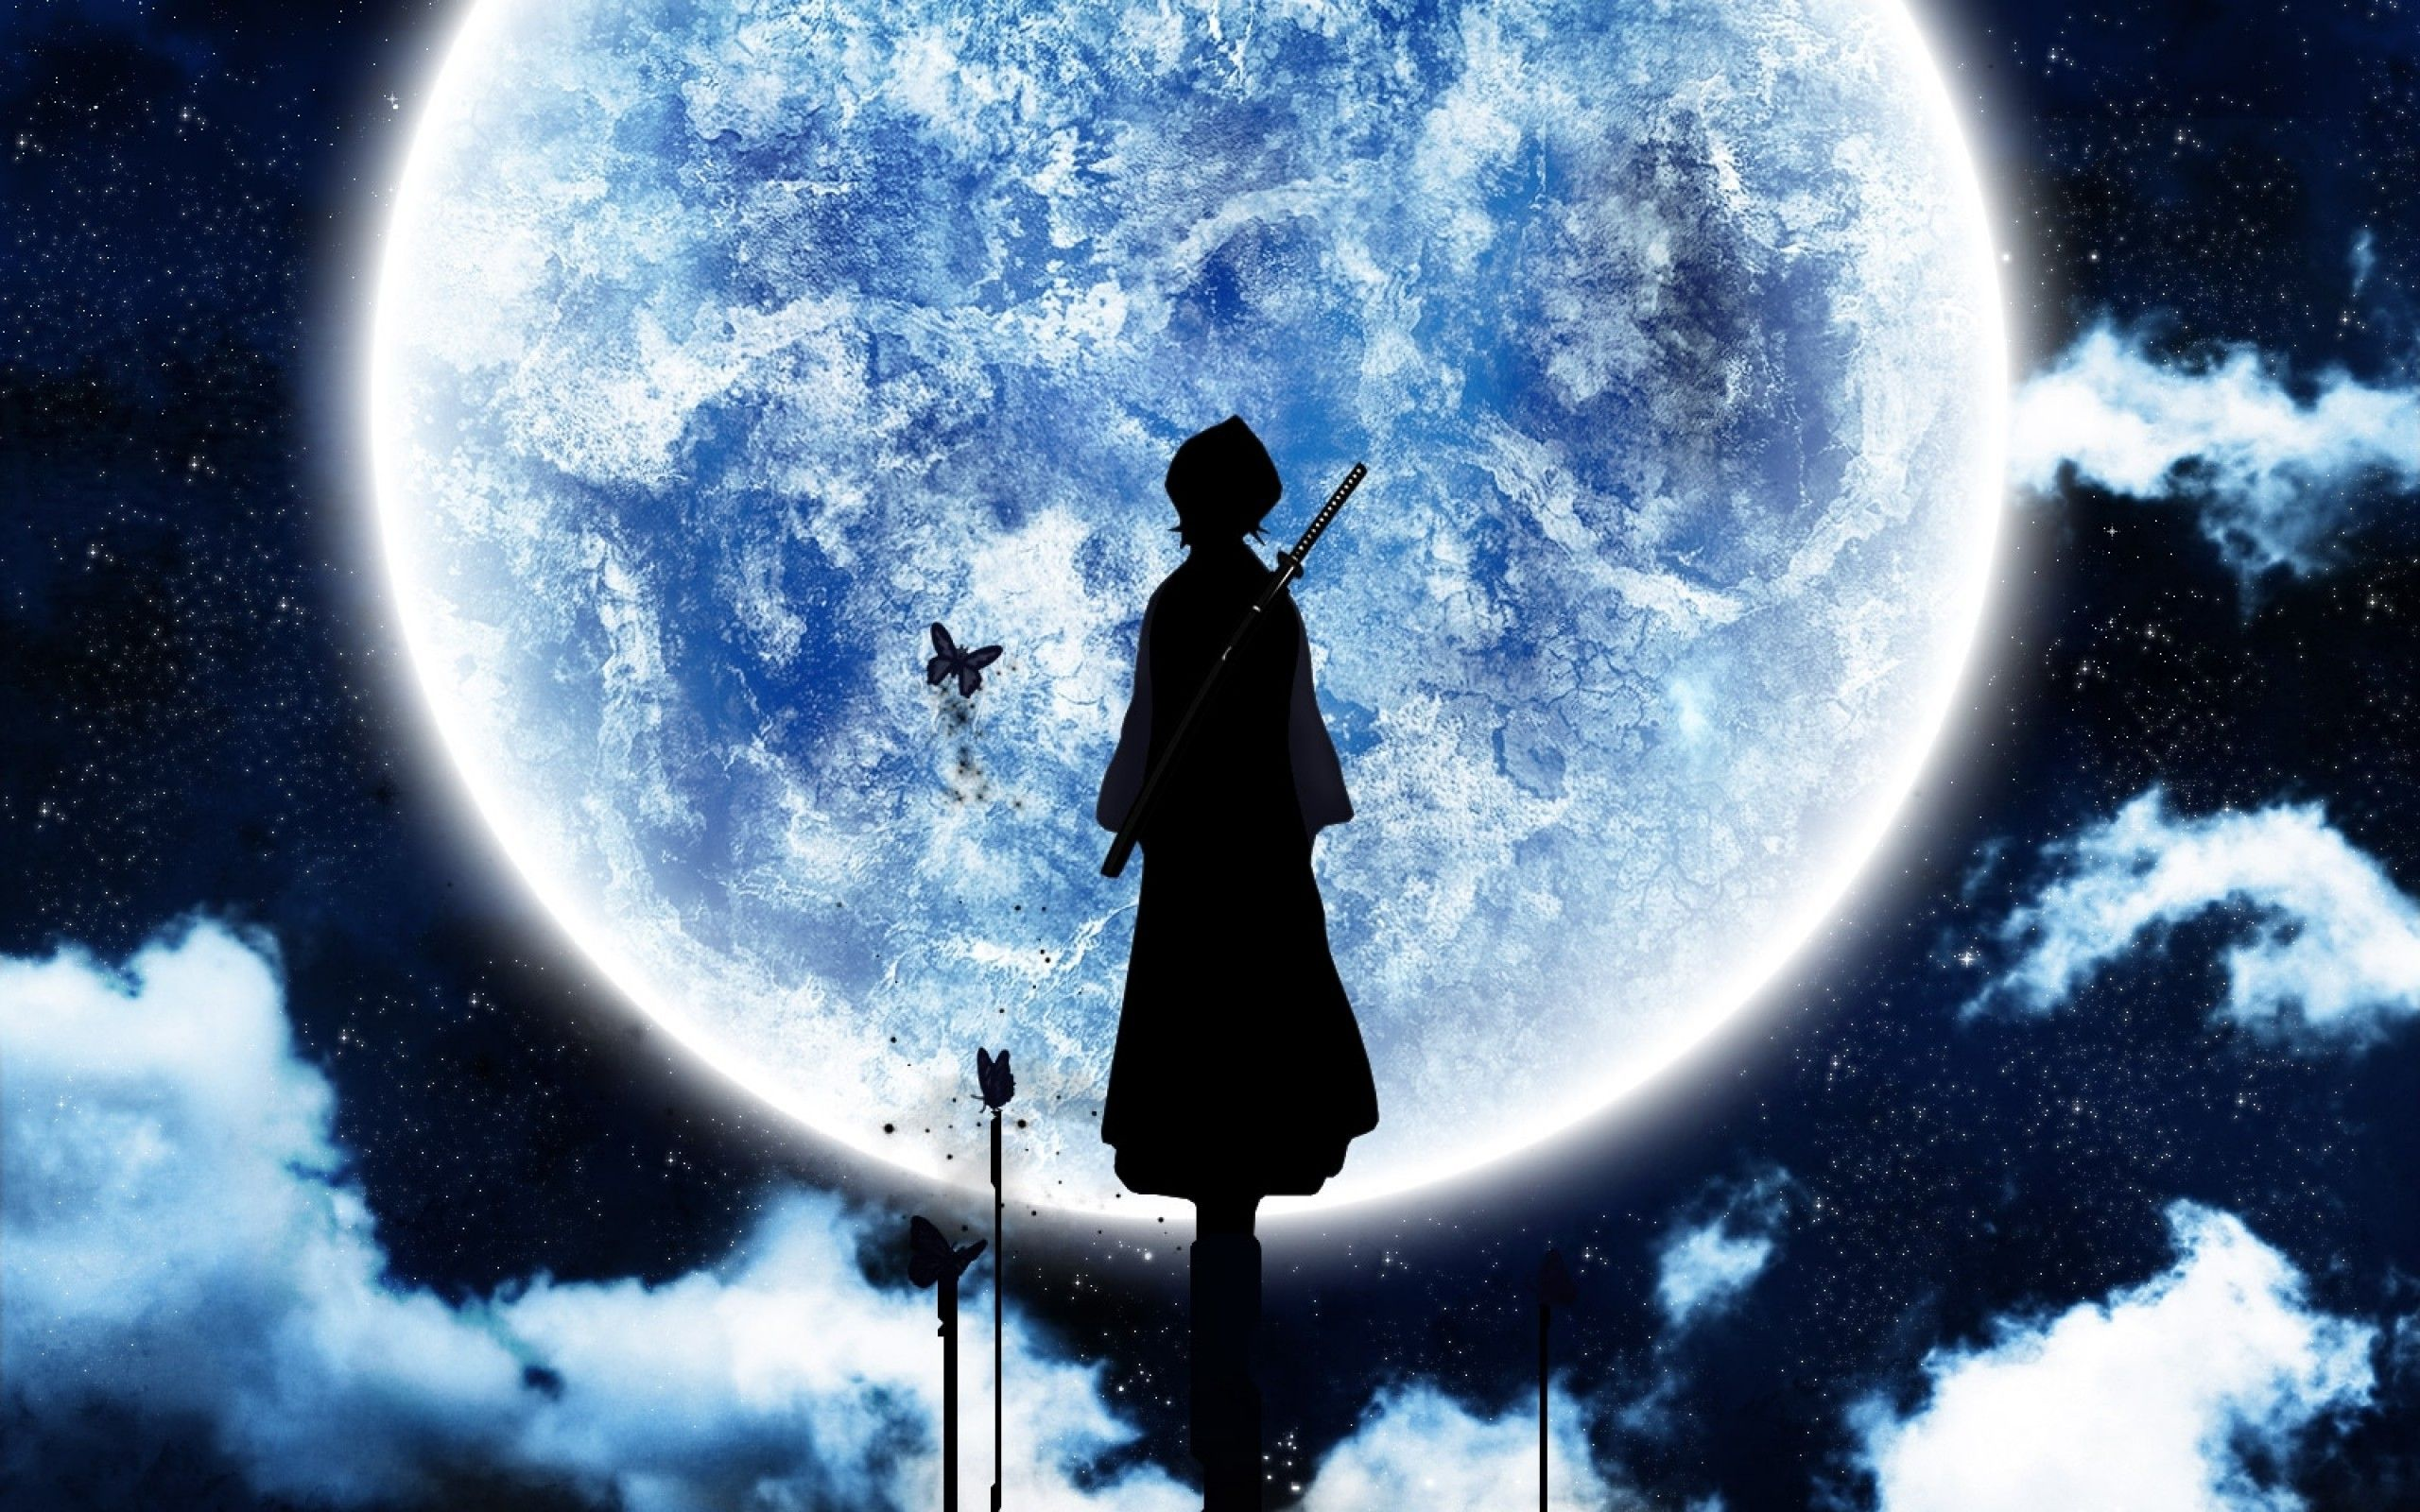 Anime Moon Wallpapers Top Free Anime Moon Backgrounds